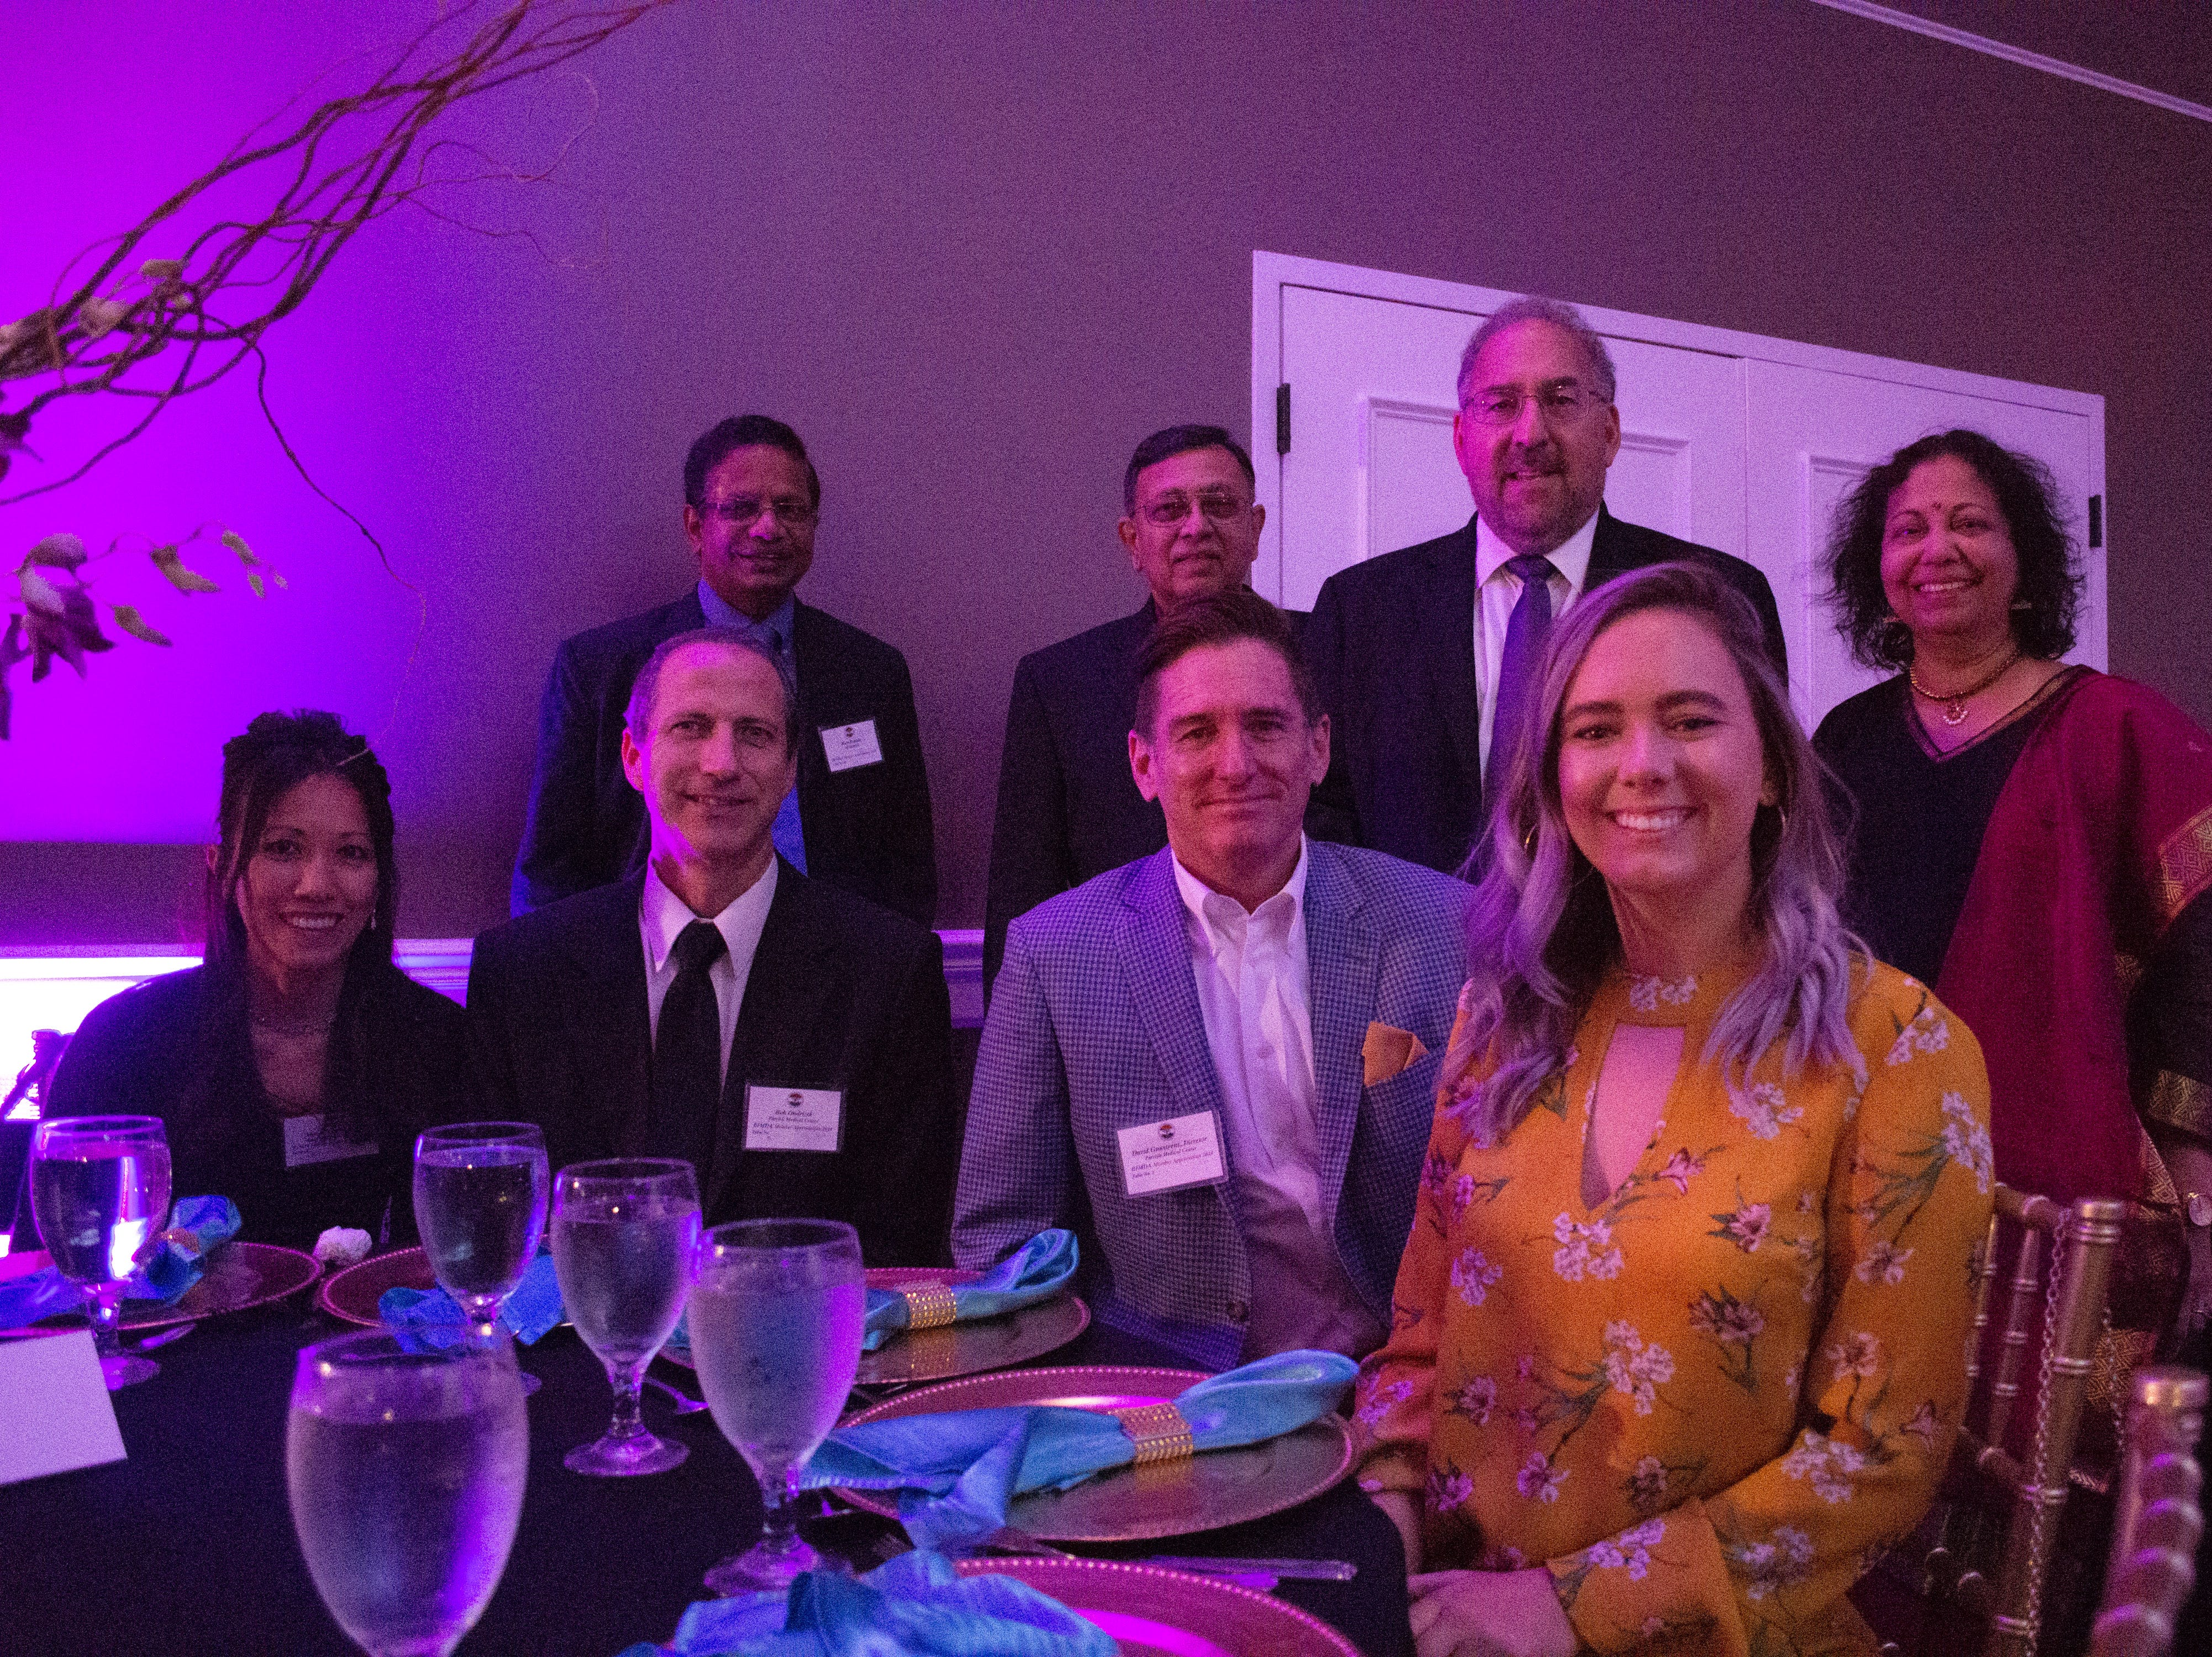 Parrish Medical Center staff and doctors pose for a photo at the 2018 BIMDA annual dinner and awards ceremony.